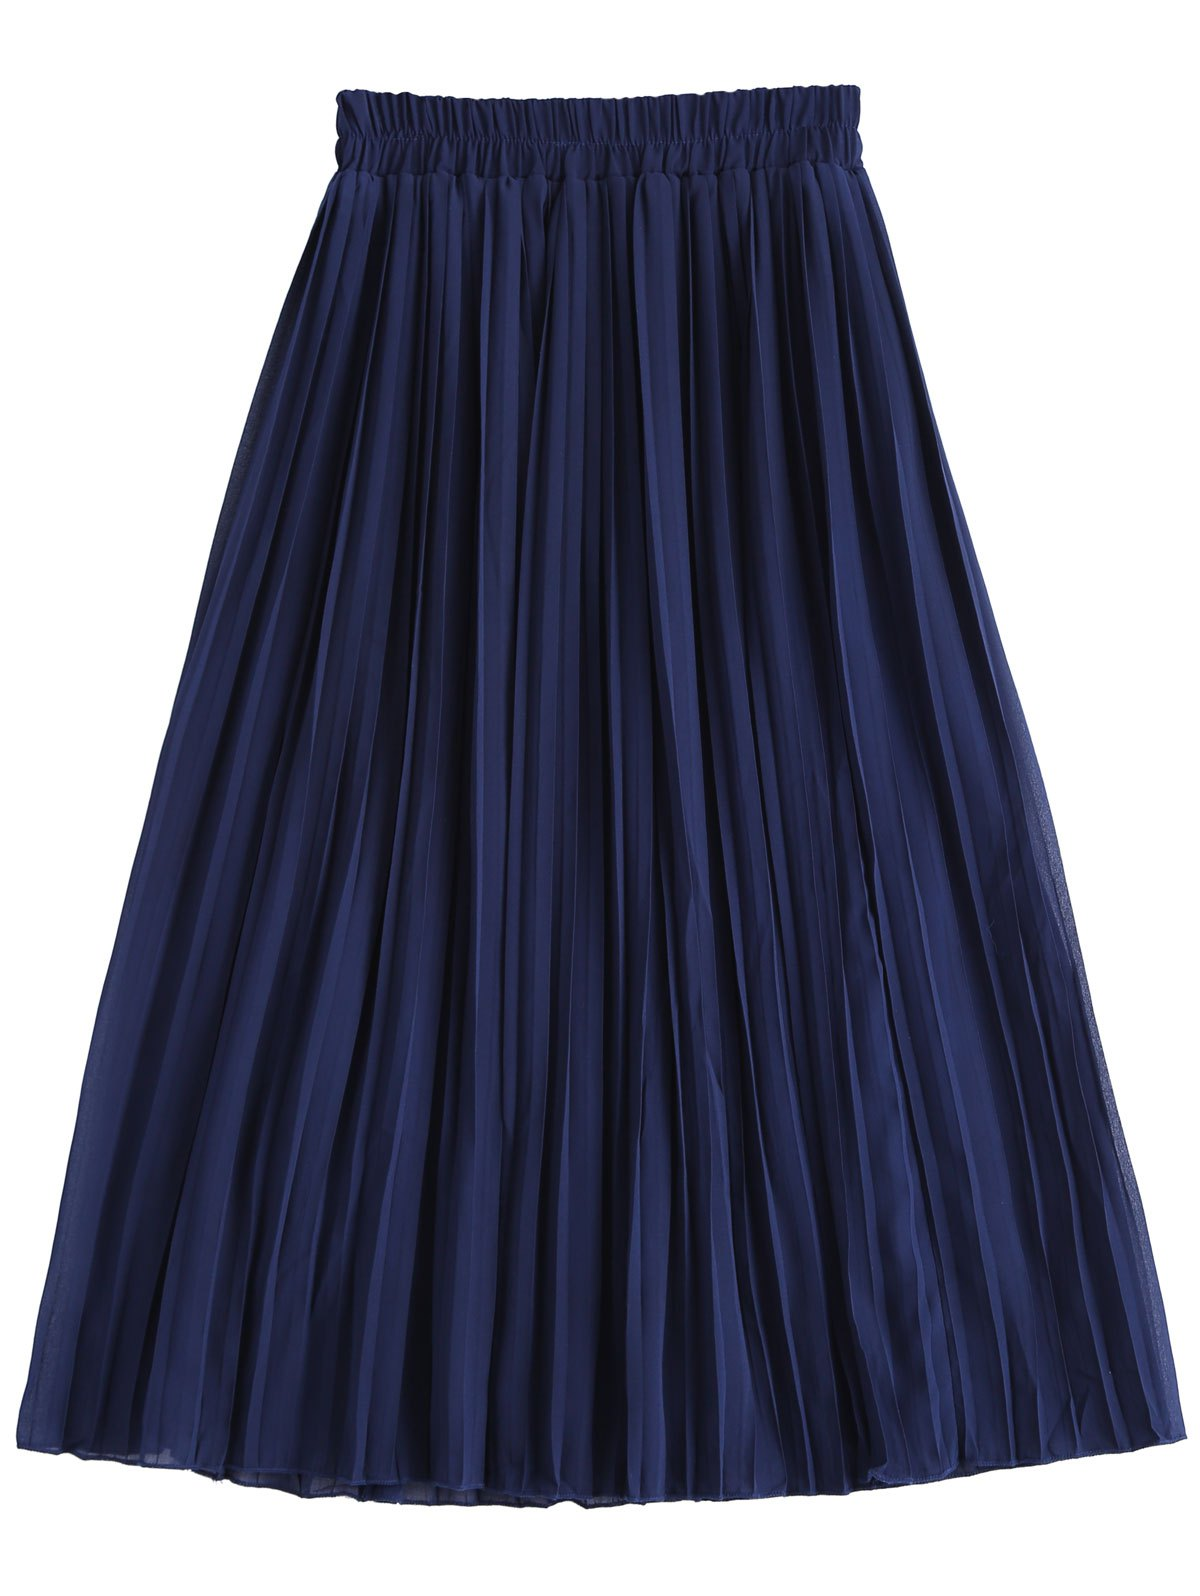 Discount Stylish High Waist Chiffon Pleated Skirt For Women